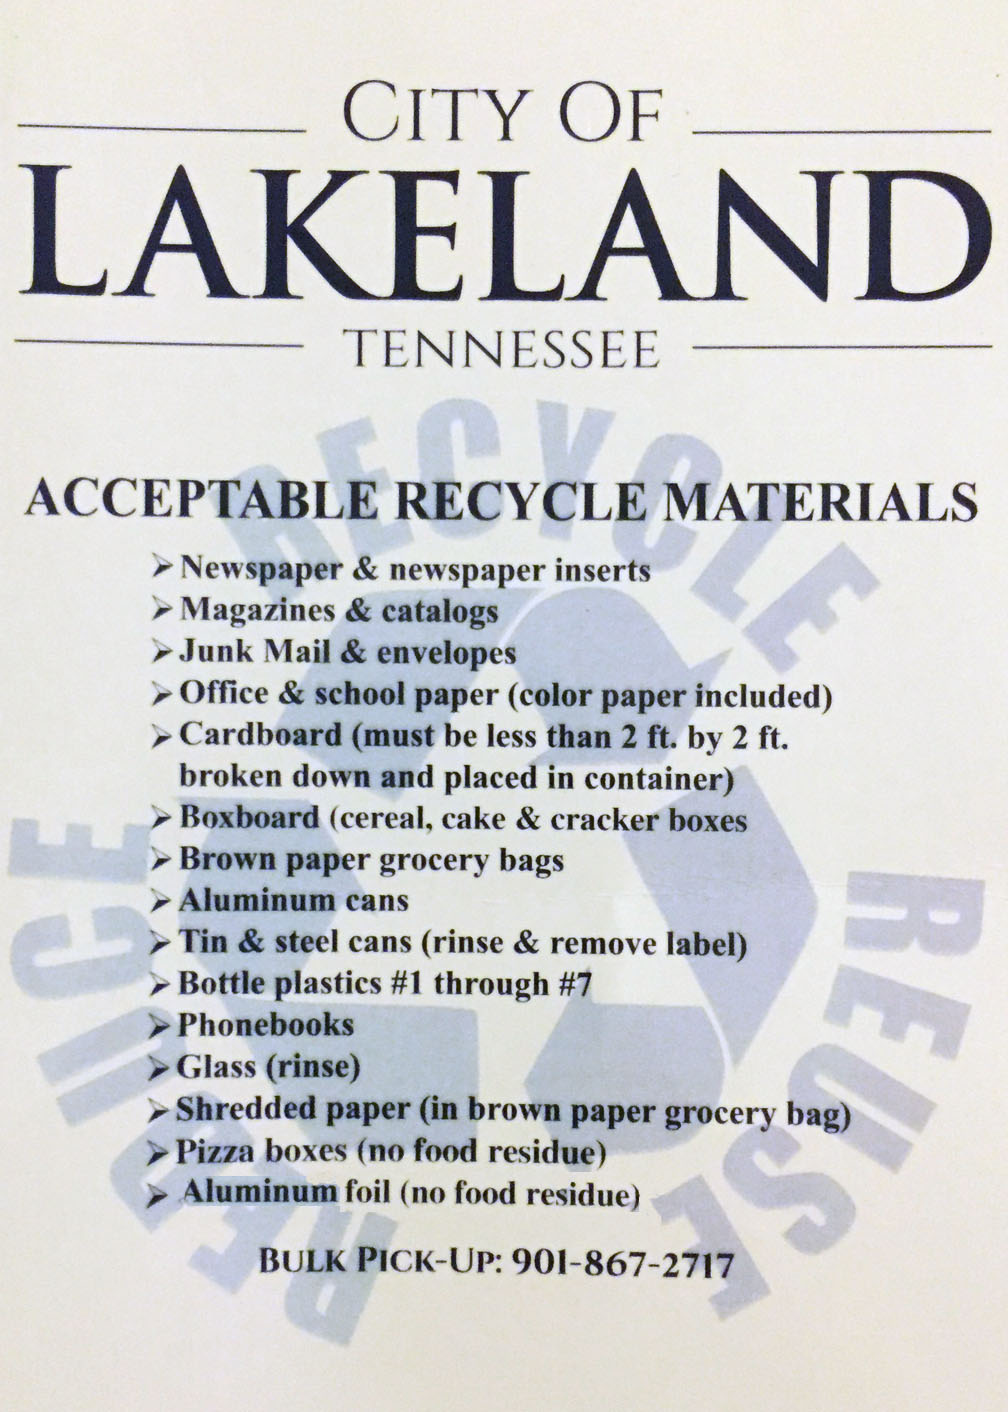 Lakeland, TN - Official Website - Household Trash, Recycling, and